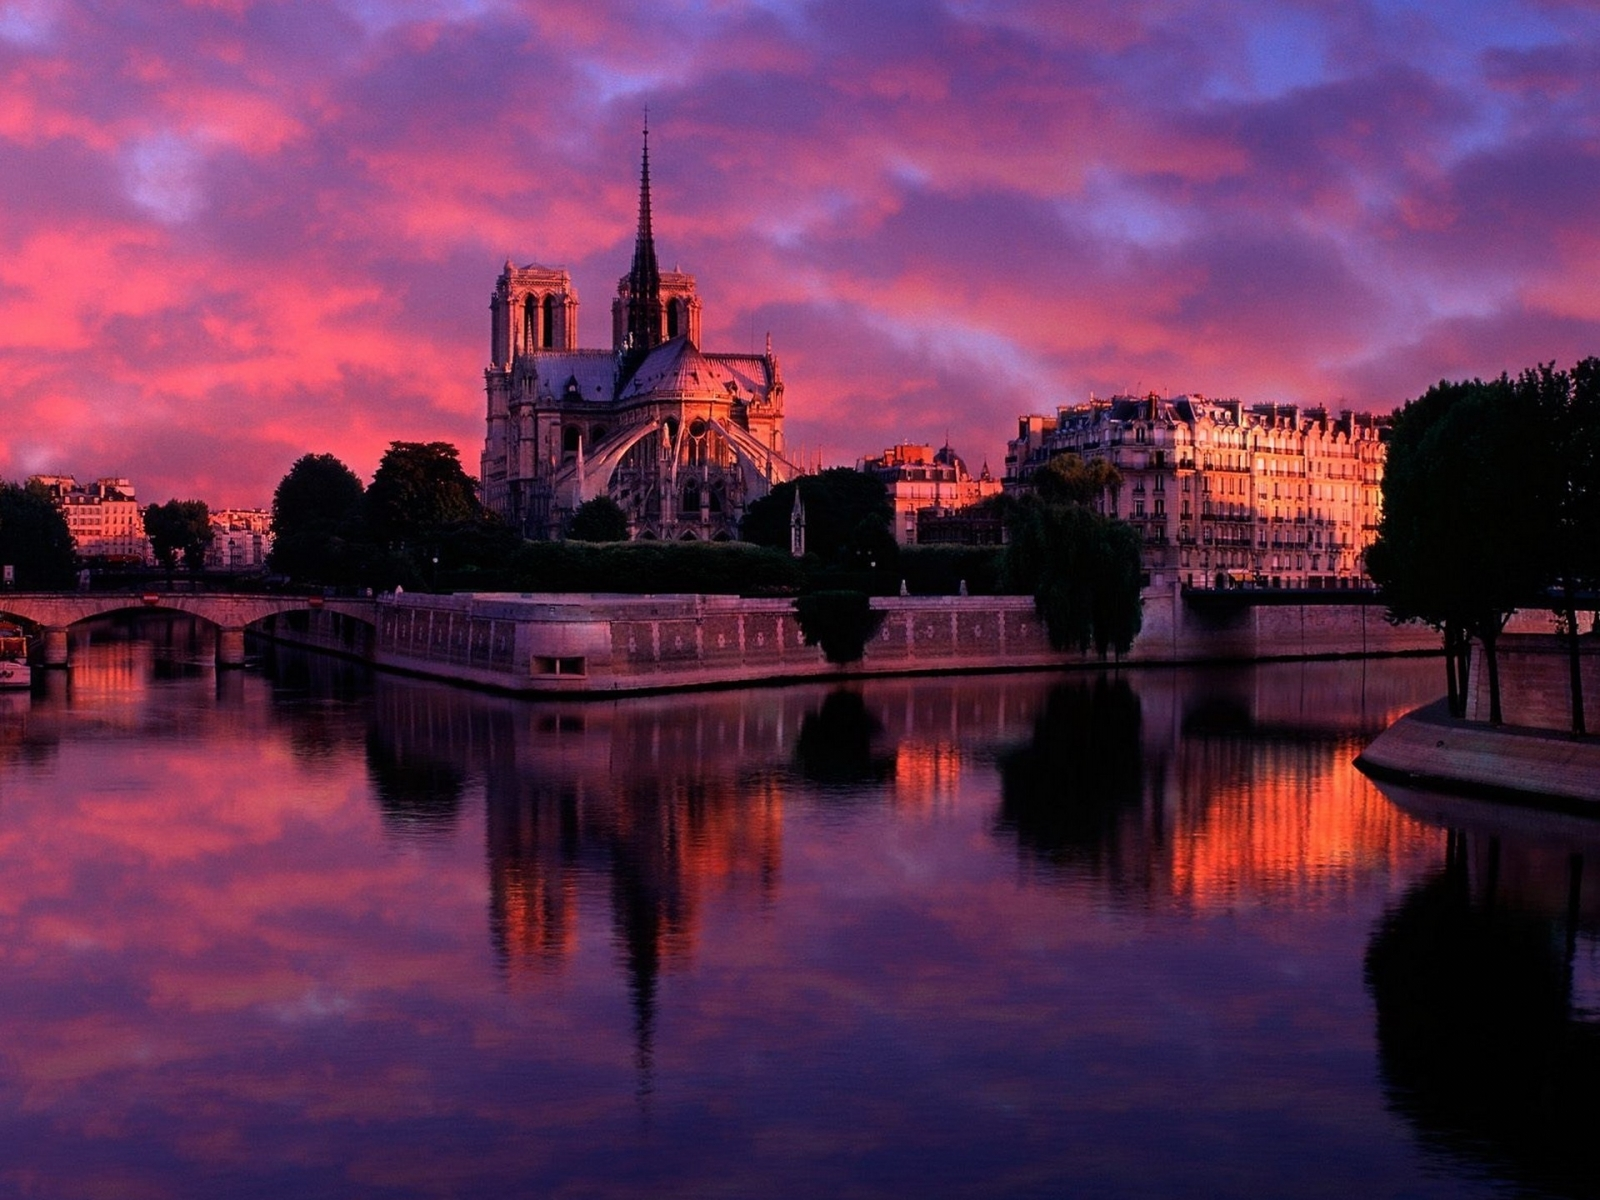 3191 download wallpaper Landscape, Cities, Water, Sunset, Sky, Architecture screensavers and pictures for free